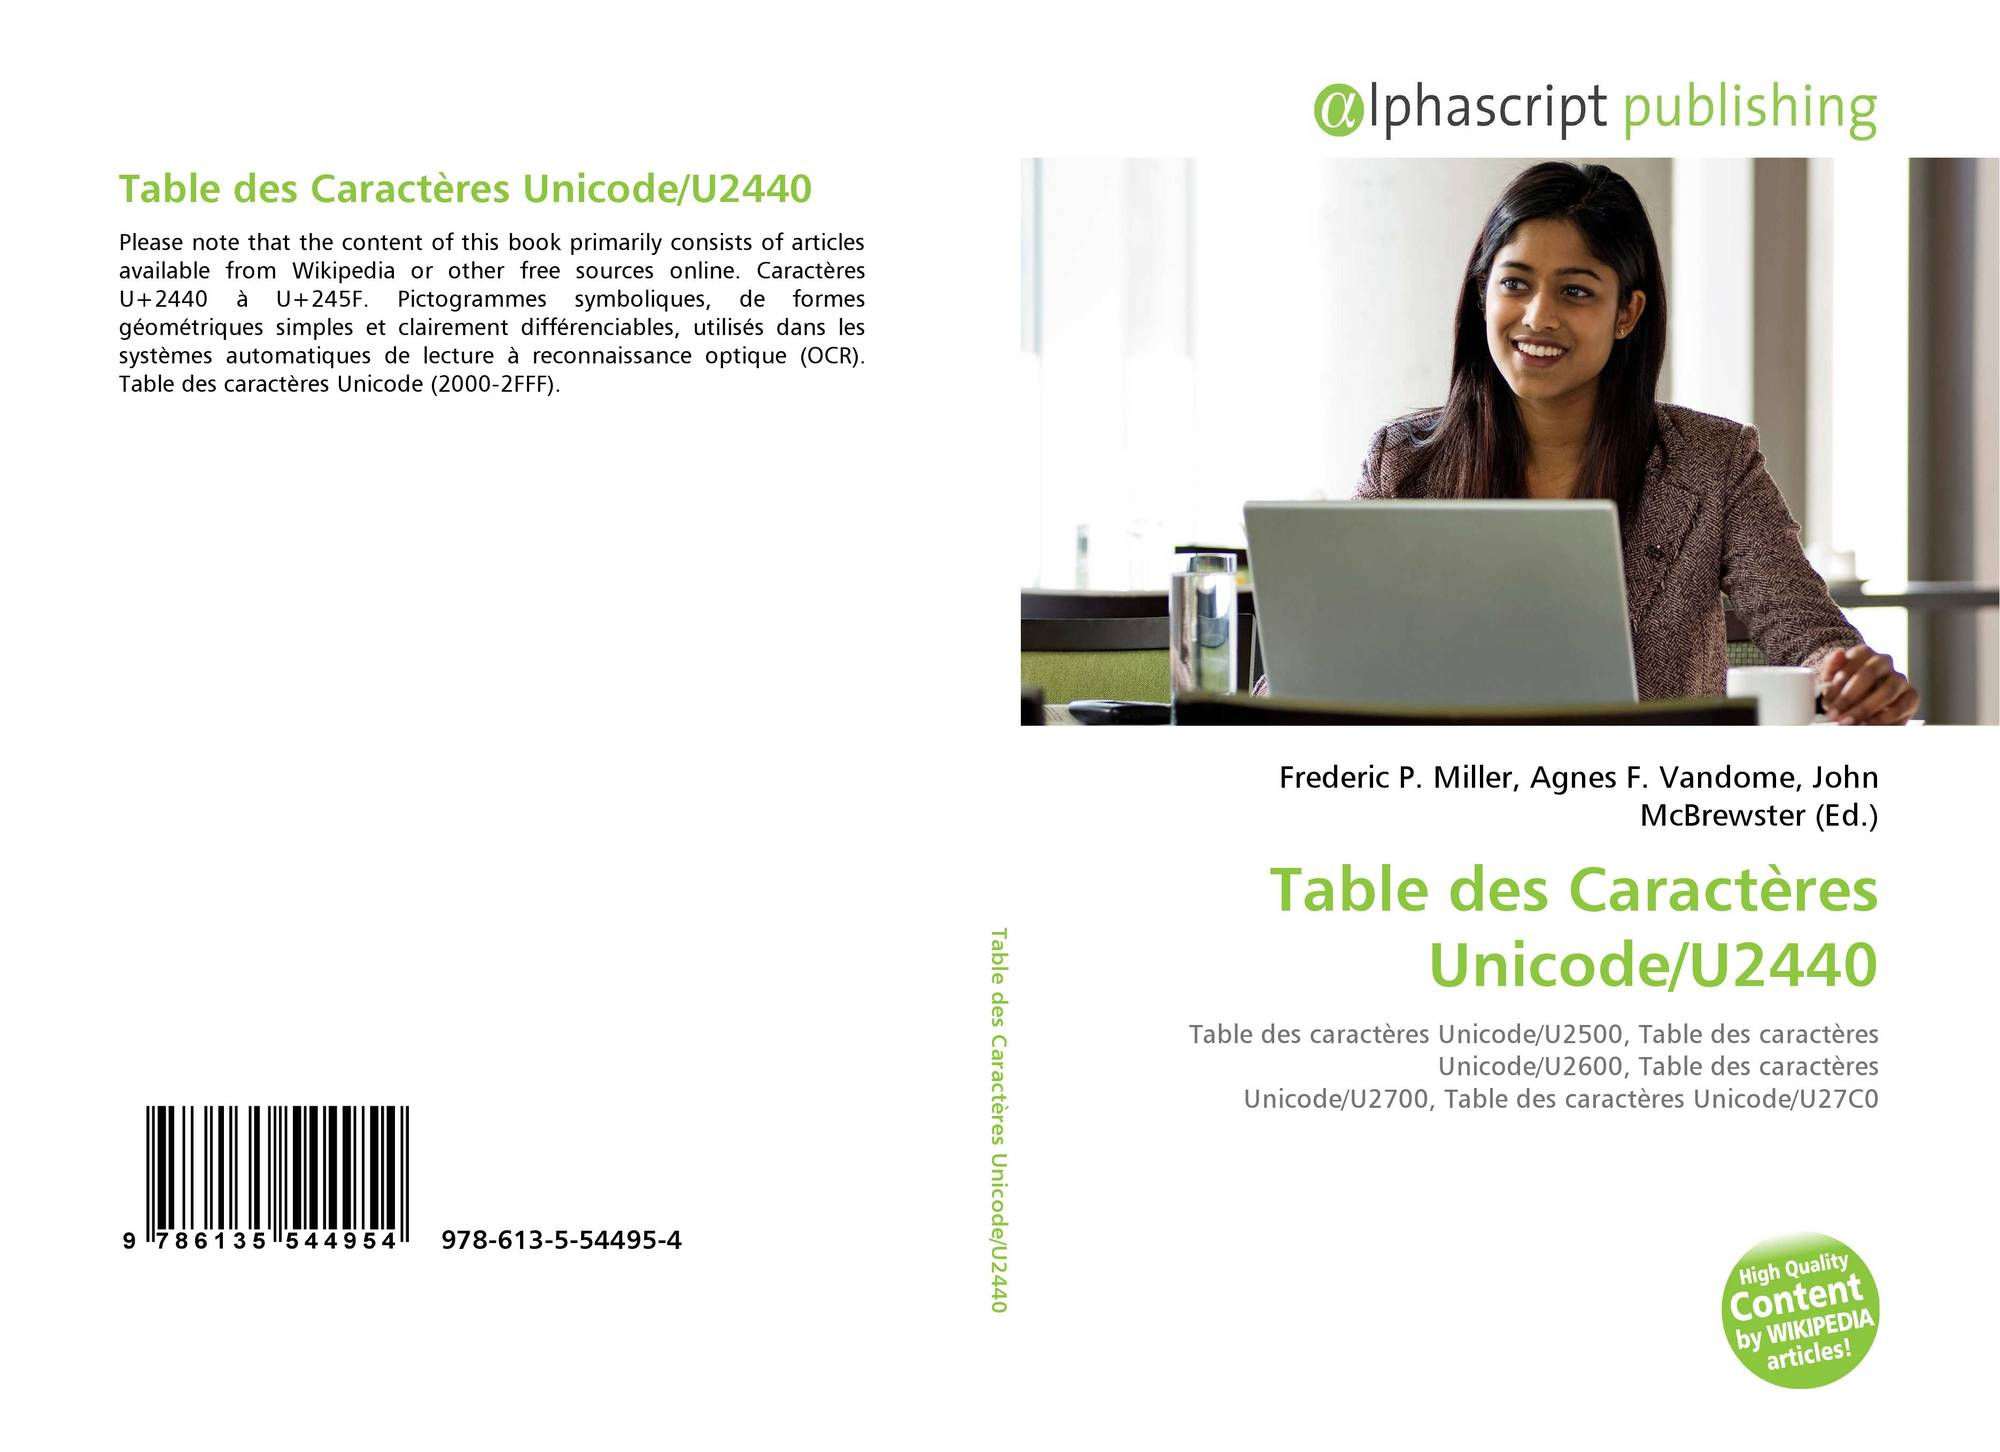 Table des caract res unicode u2440 978 613 5 54495 4 6135544950 9786135544954 - Table de caracteres speciaux ...